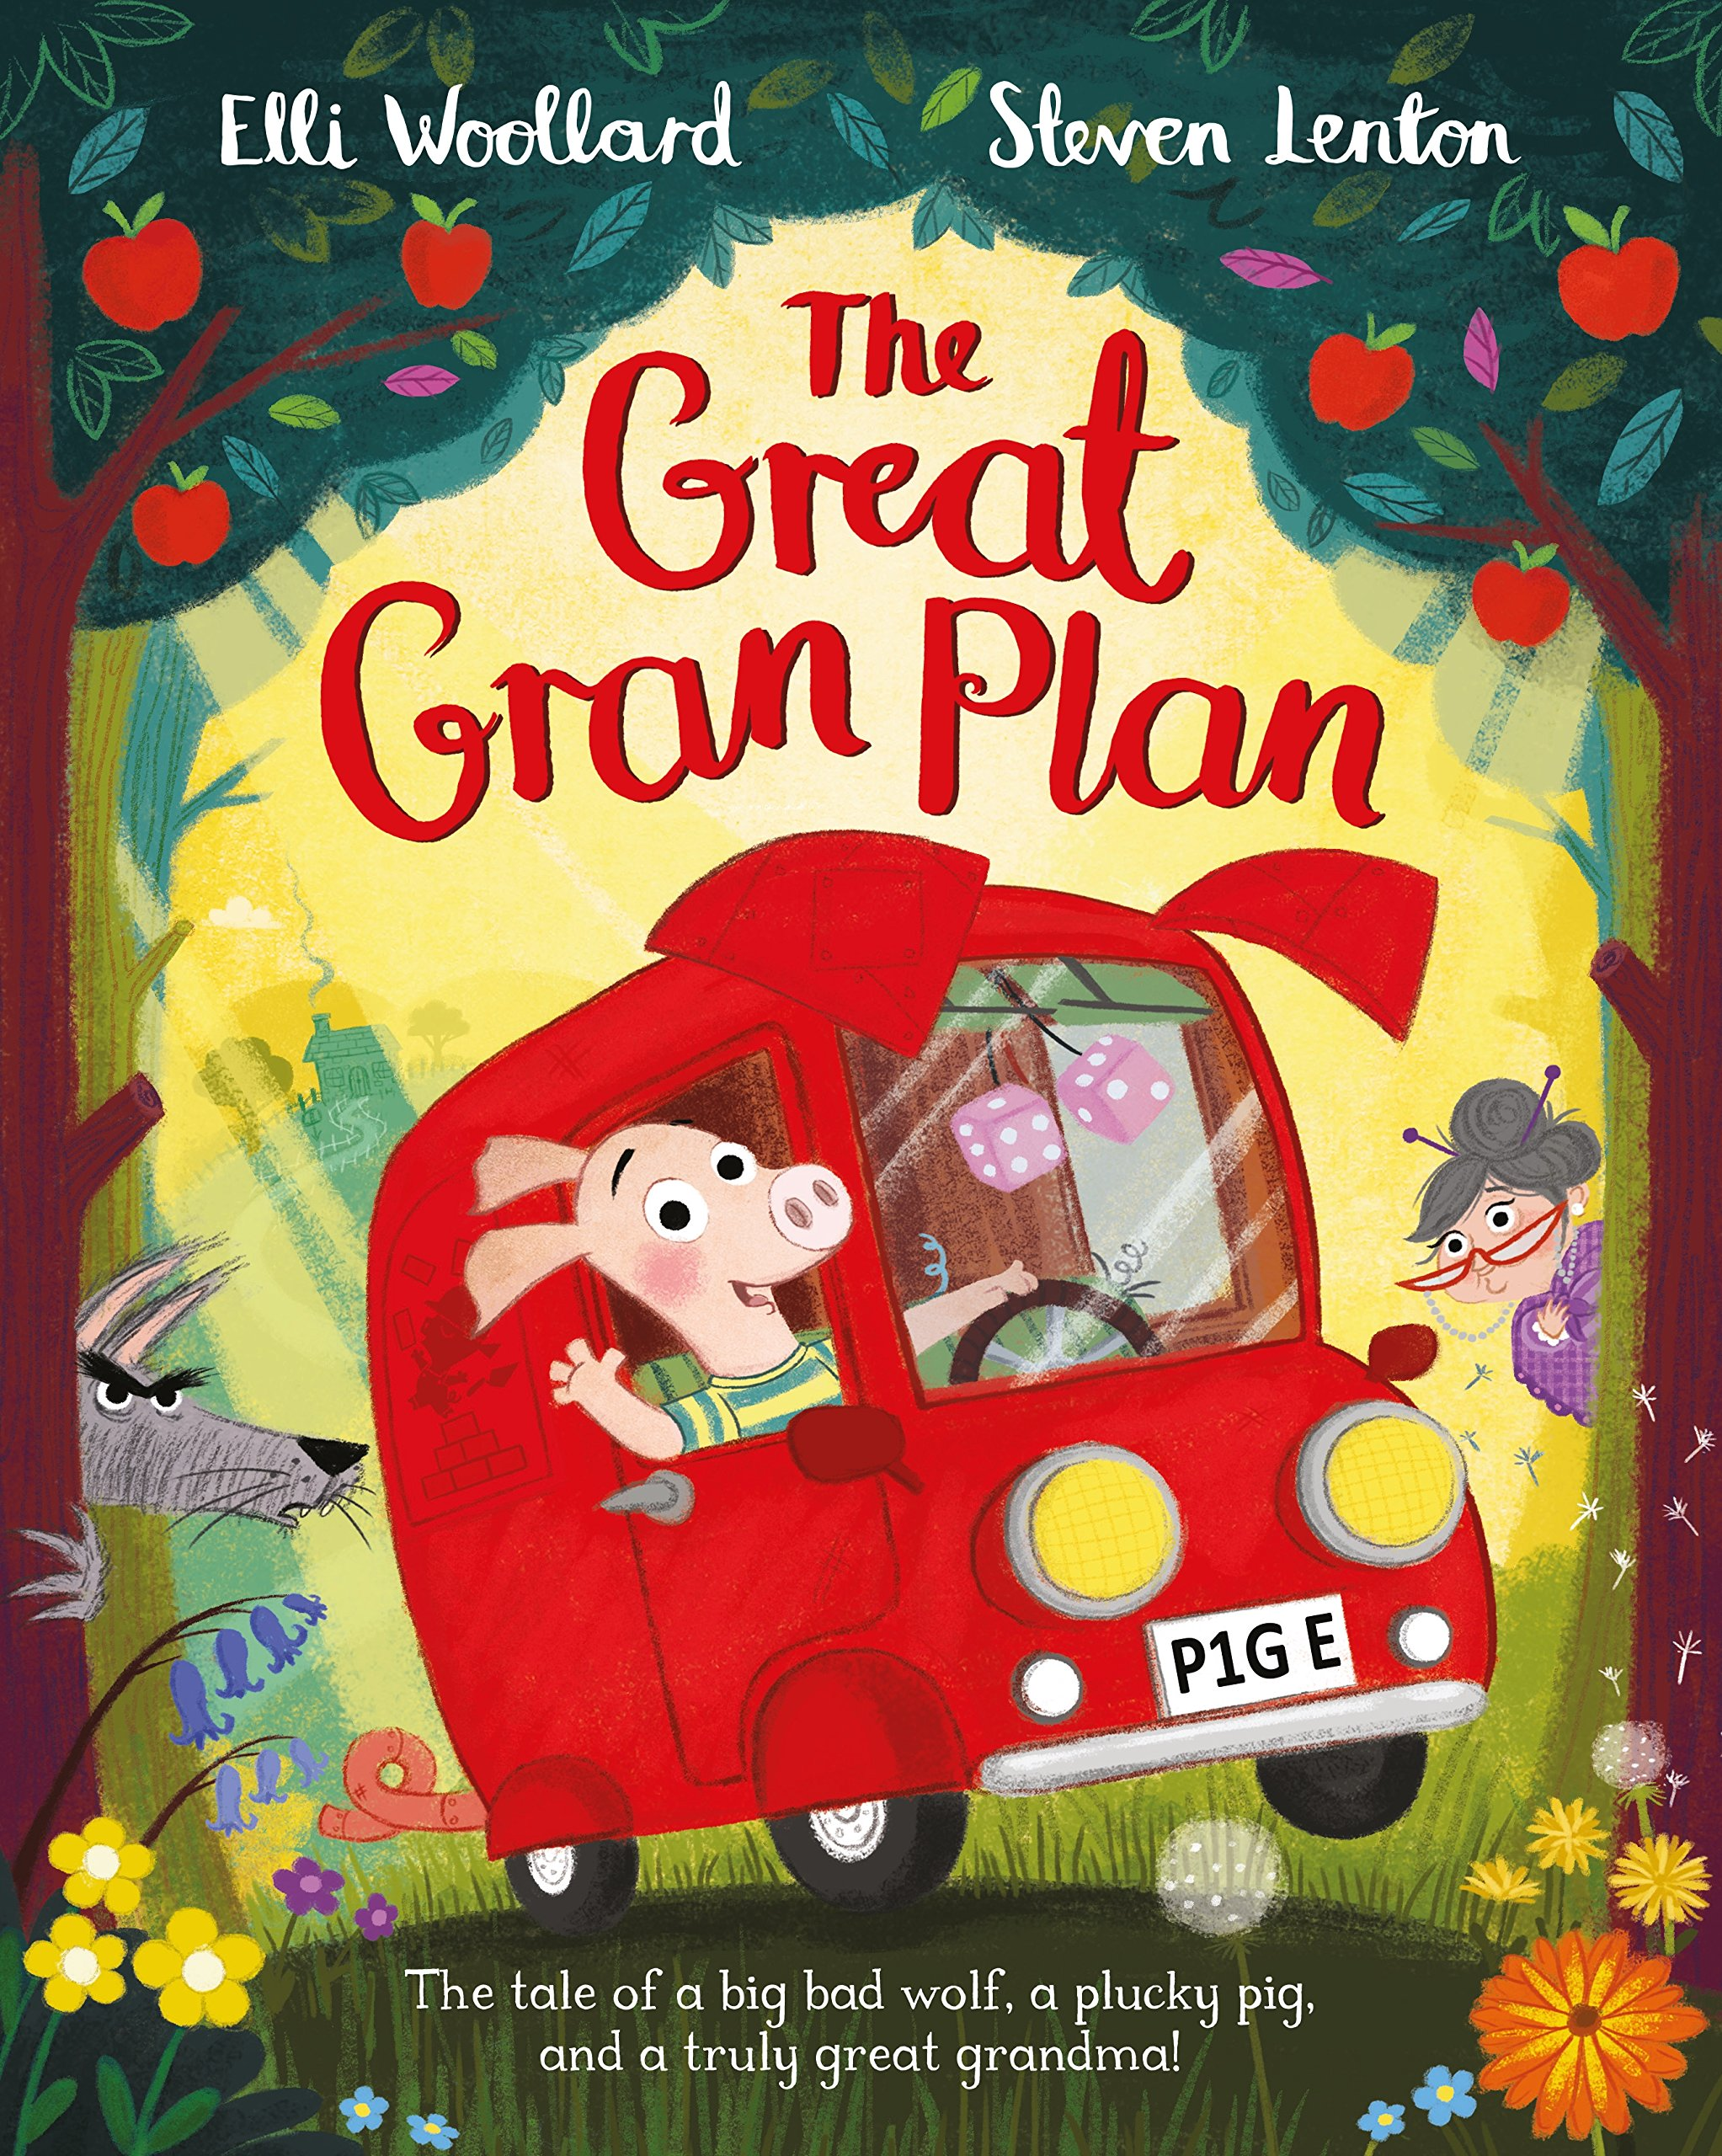 Rave reviews for The Great Gran Plan